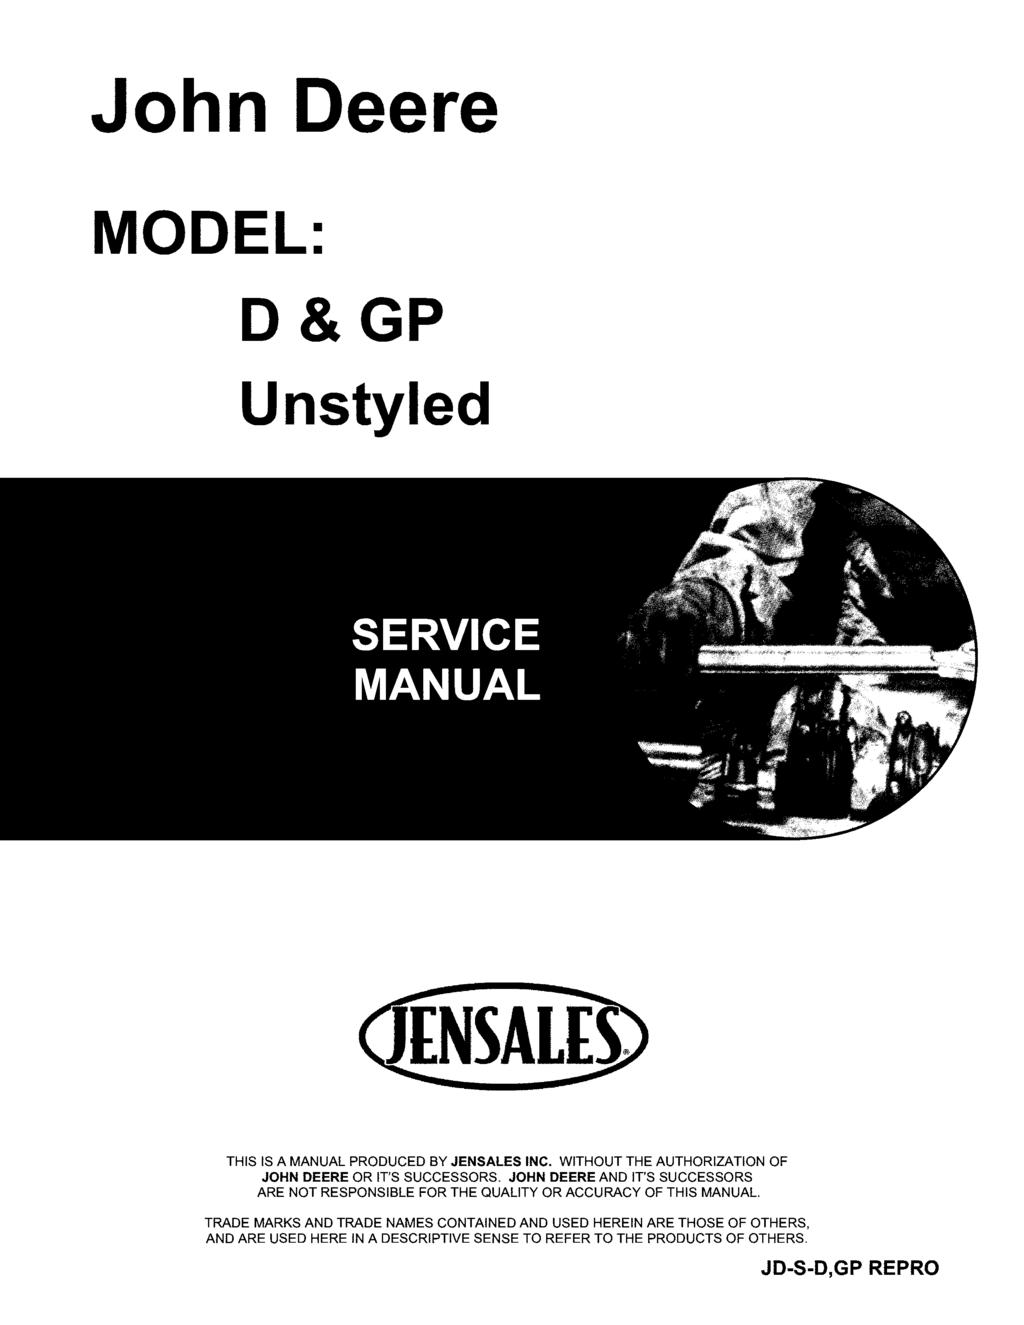 John Deere MODEL: D&GP Unstyled THIS IS A MANUAL PRODUCED BY JENSALES INC.  WITHOUT